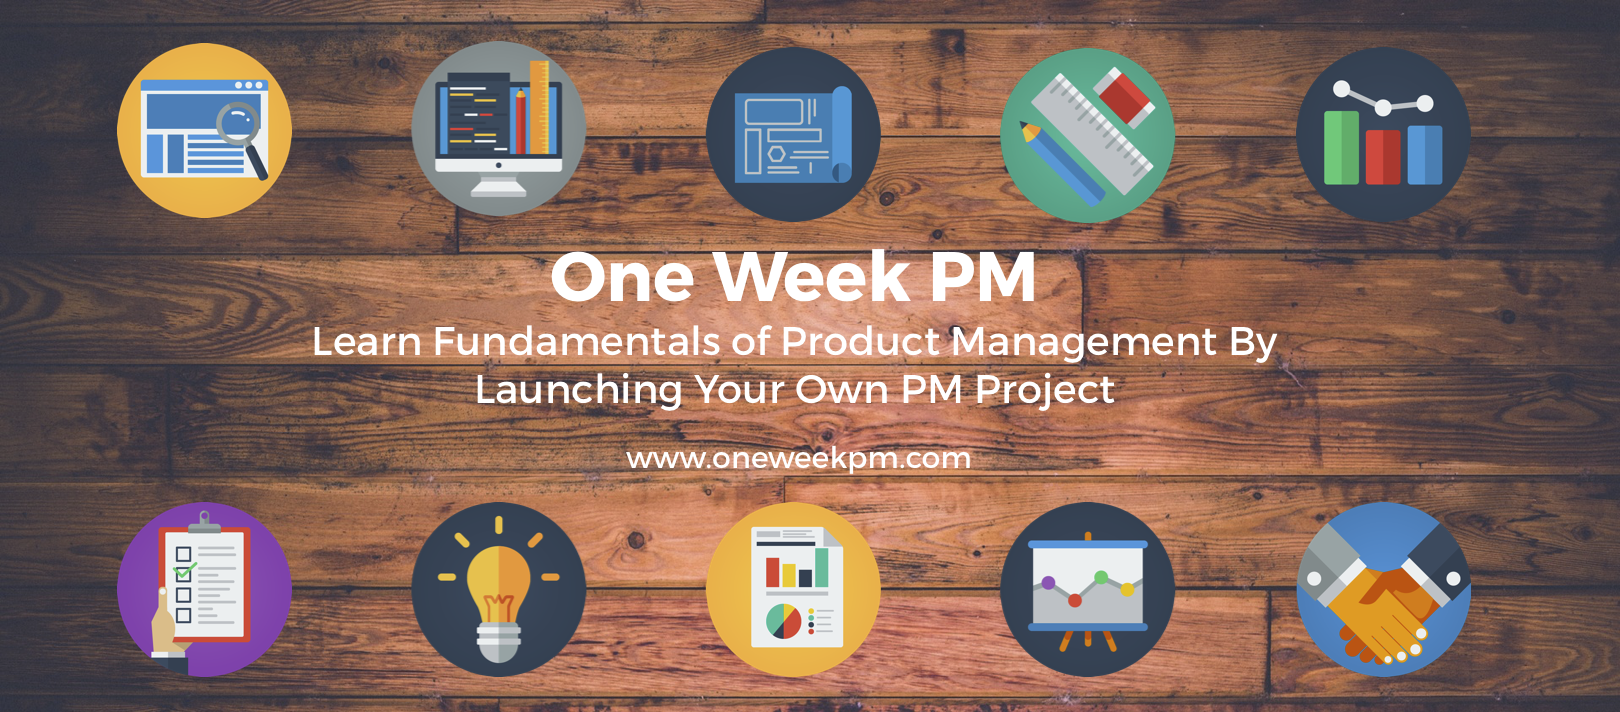 land a product manager job one week pm course one week pm patricia just enrolled in one week pm